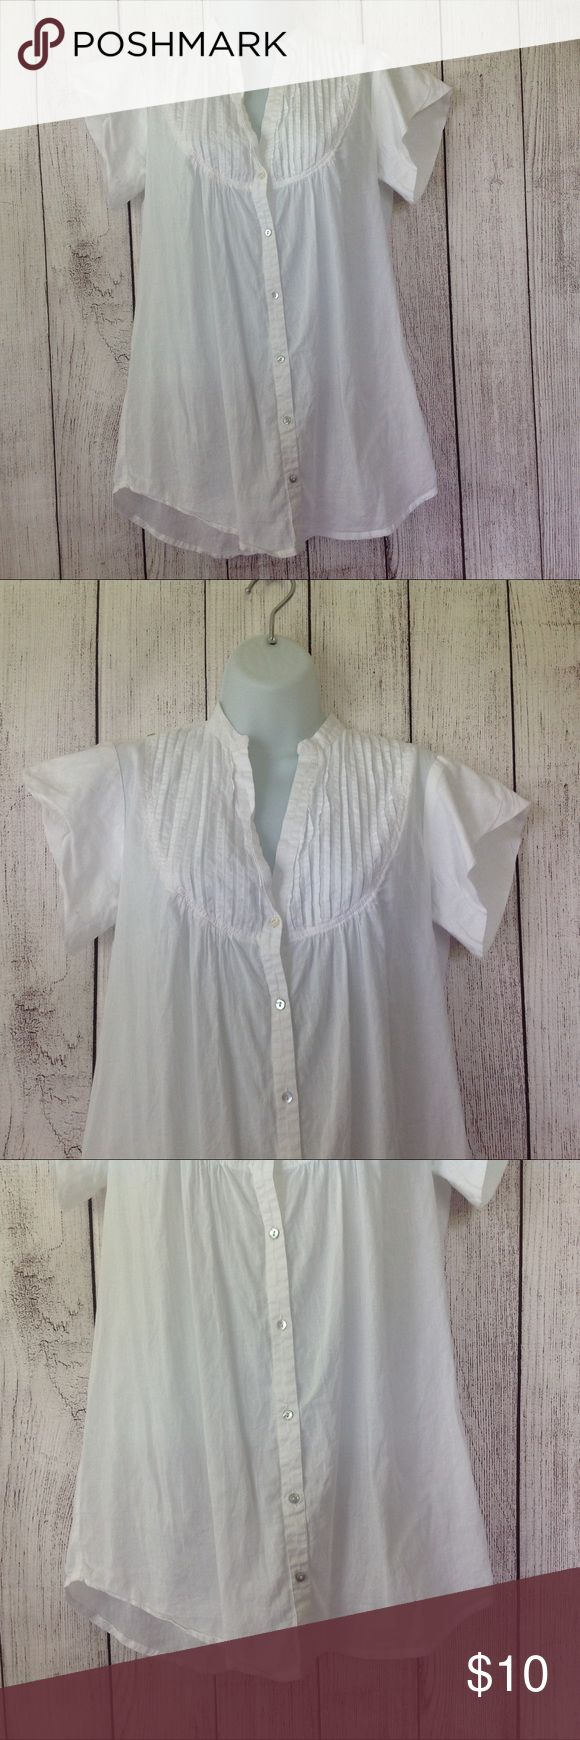 """Forever 21 Button Down Casual Blouse Maker: Forever 21 ♥ Material: Cotton ♥ Color: White ♥ Measured Size: Pit to pit- 22"""" Pit to cuff- n.a Shoulder to waist- 29""""  ♥ Tag Size:  M ♥ PLEASE CHECK YOUR ACTUAL MEASUREMENTS TO MAKE SURE IT IS THE RIGHT SIZE! THANKS!  ♥ Condition: Great used Condition  ♥ Item #: (office use only) A  Follow us for coupon codes!  INSTAGRAM-thehausofvintage1984 Twitter- @hov1984 Facebook- Intergalactic Haus of Vintage 1984 Forever 21 Tops Button Down Shirts"""